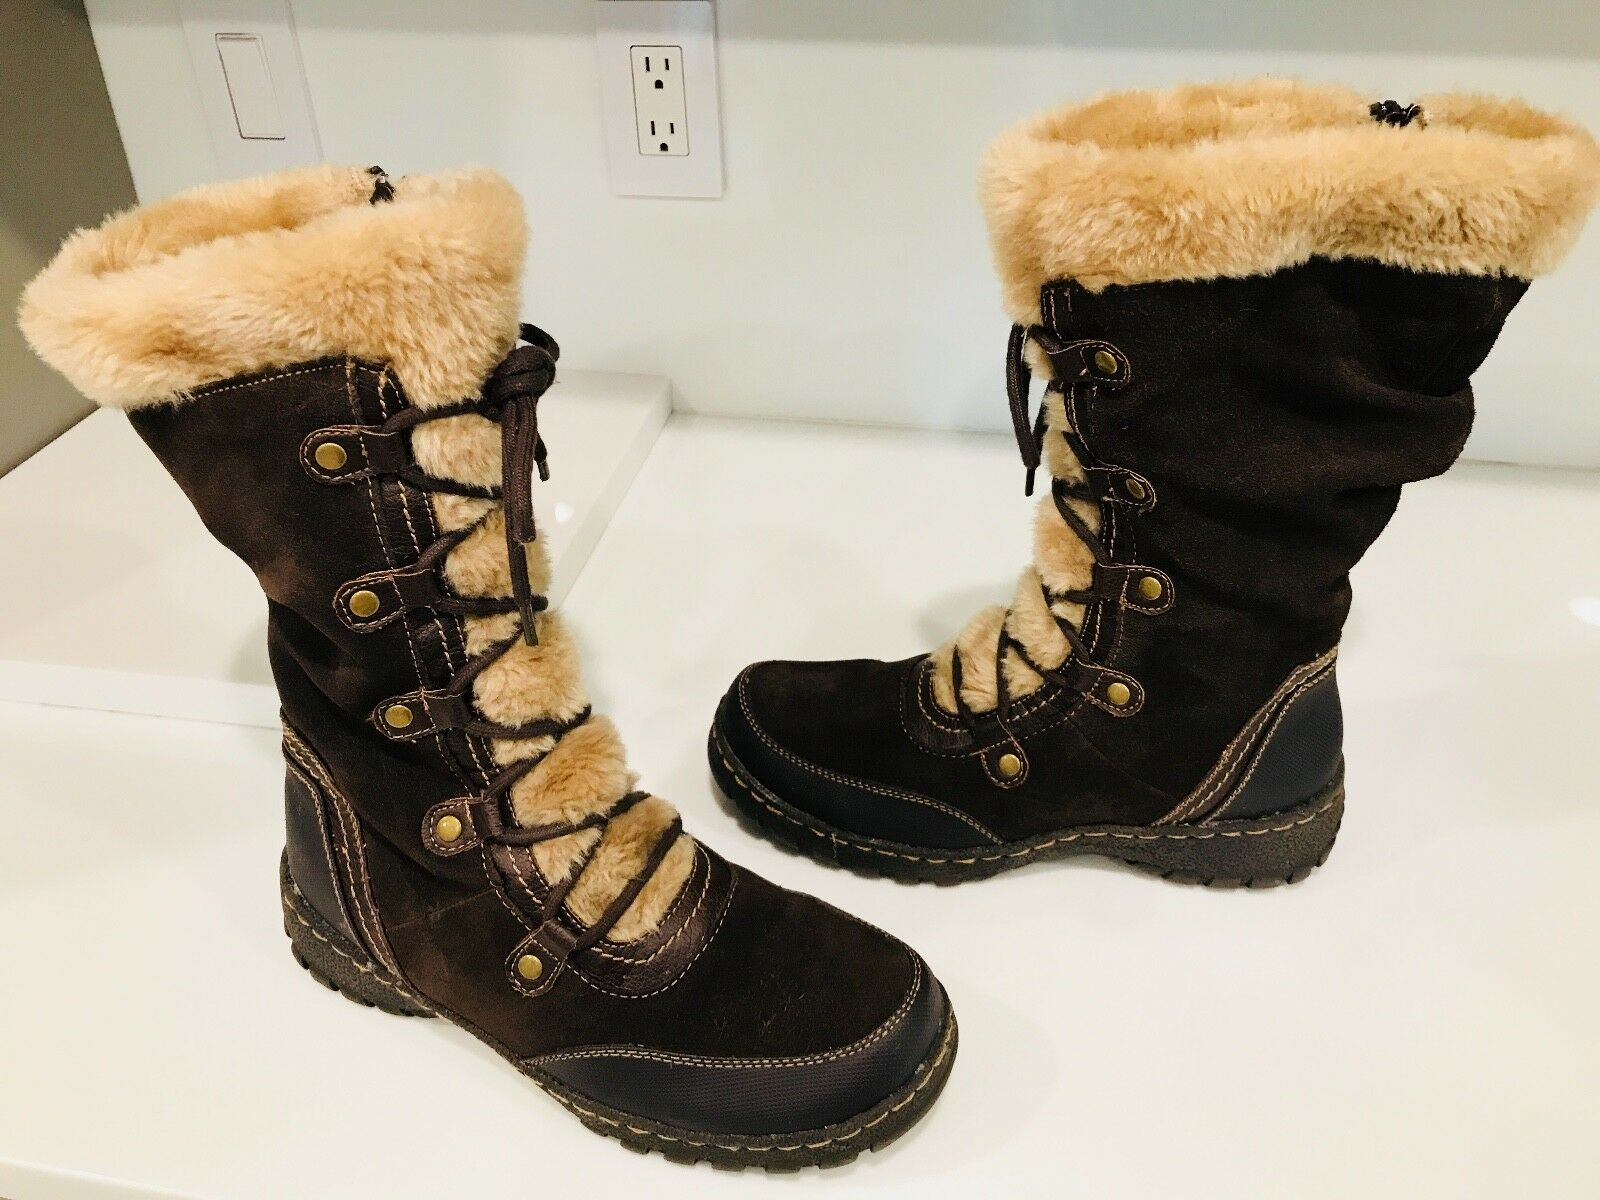 Winter botas Wohombres Talla 9.5 Bass-Willa zapatos Leather Synthetic Upper